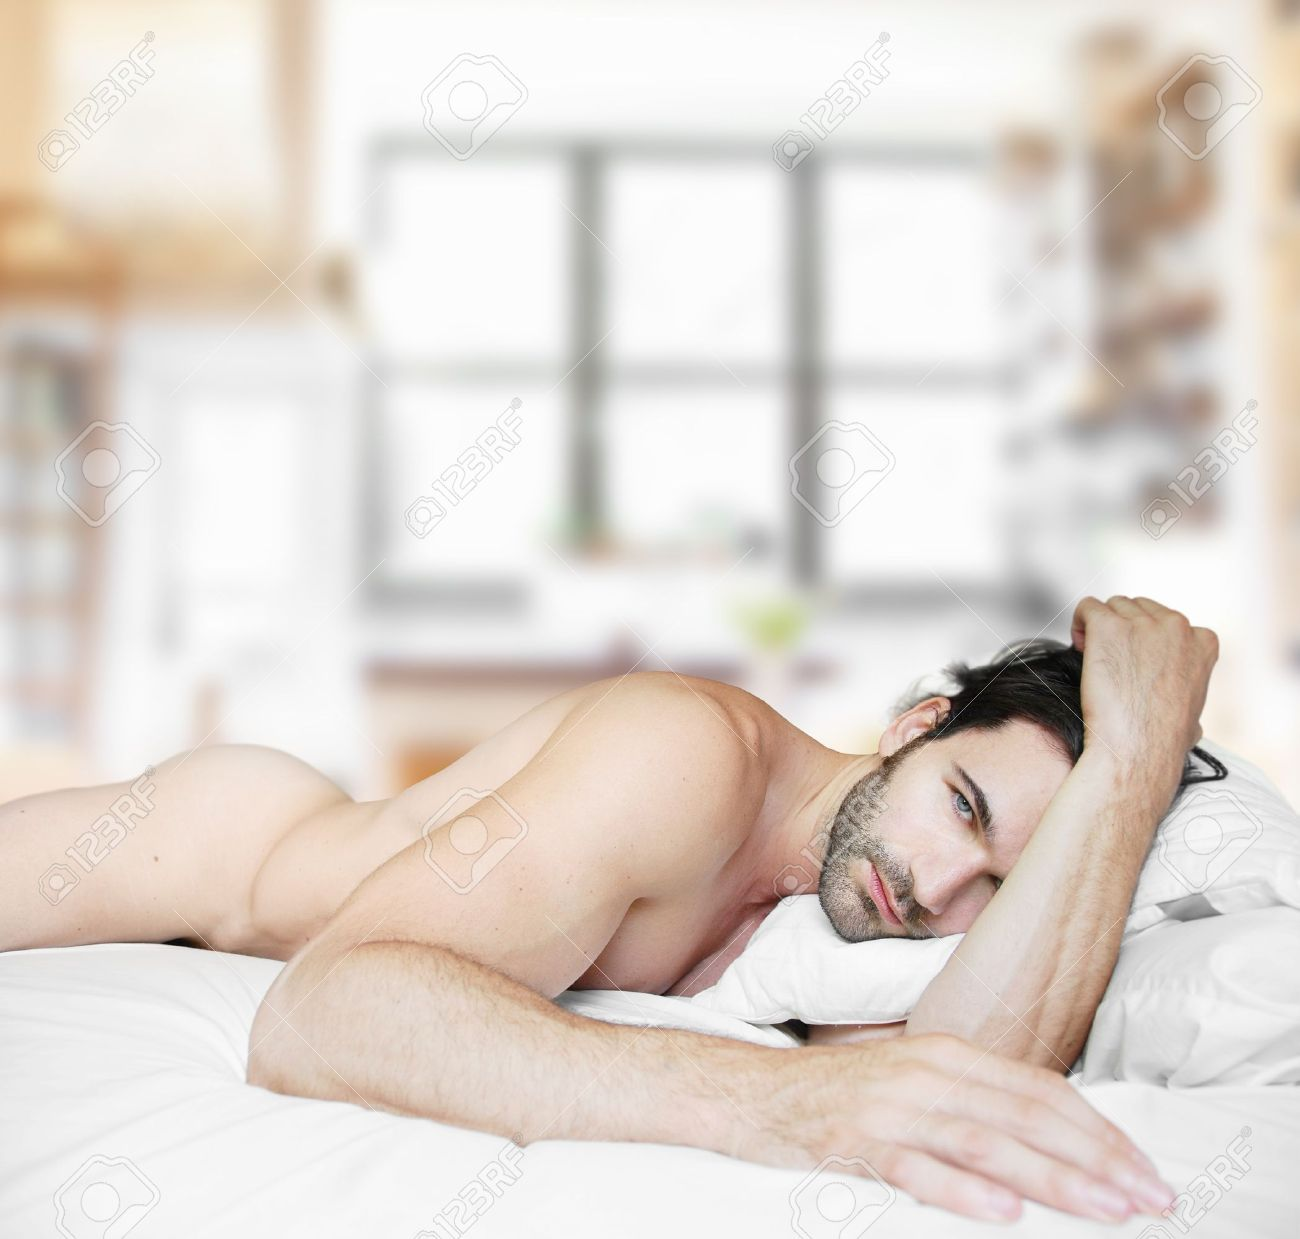 Sexy nude male model in bed at home alone Stock Photo - 10089969